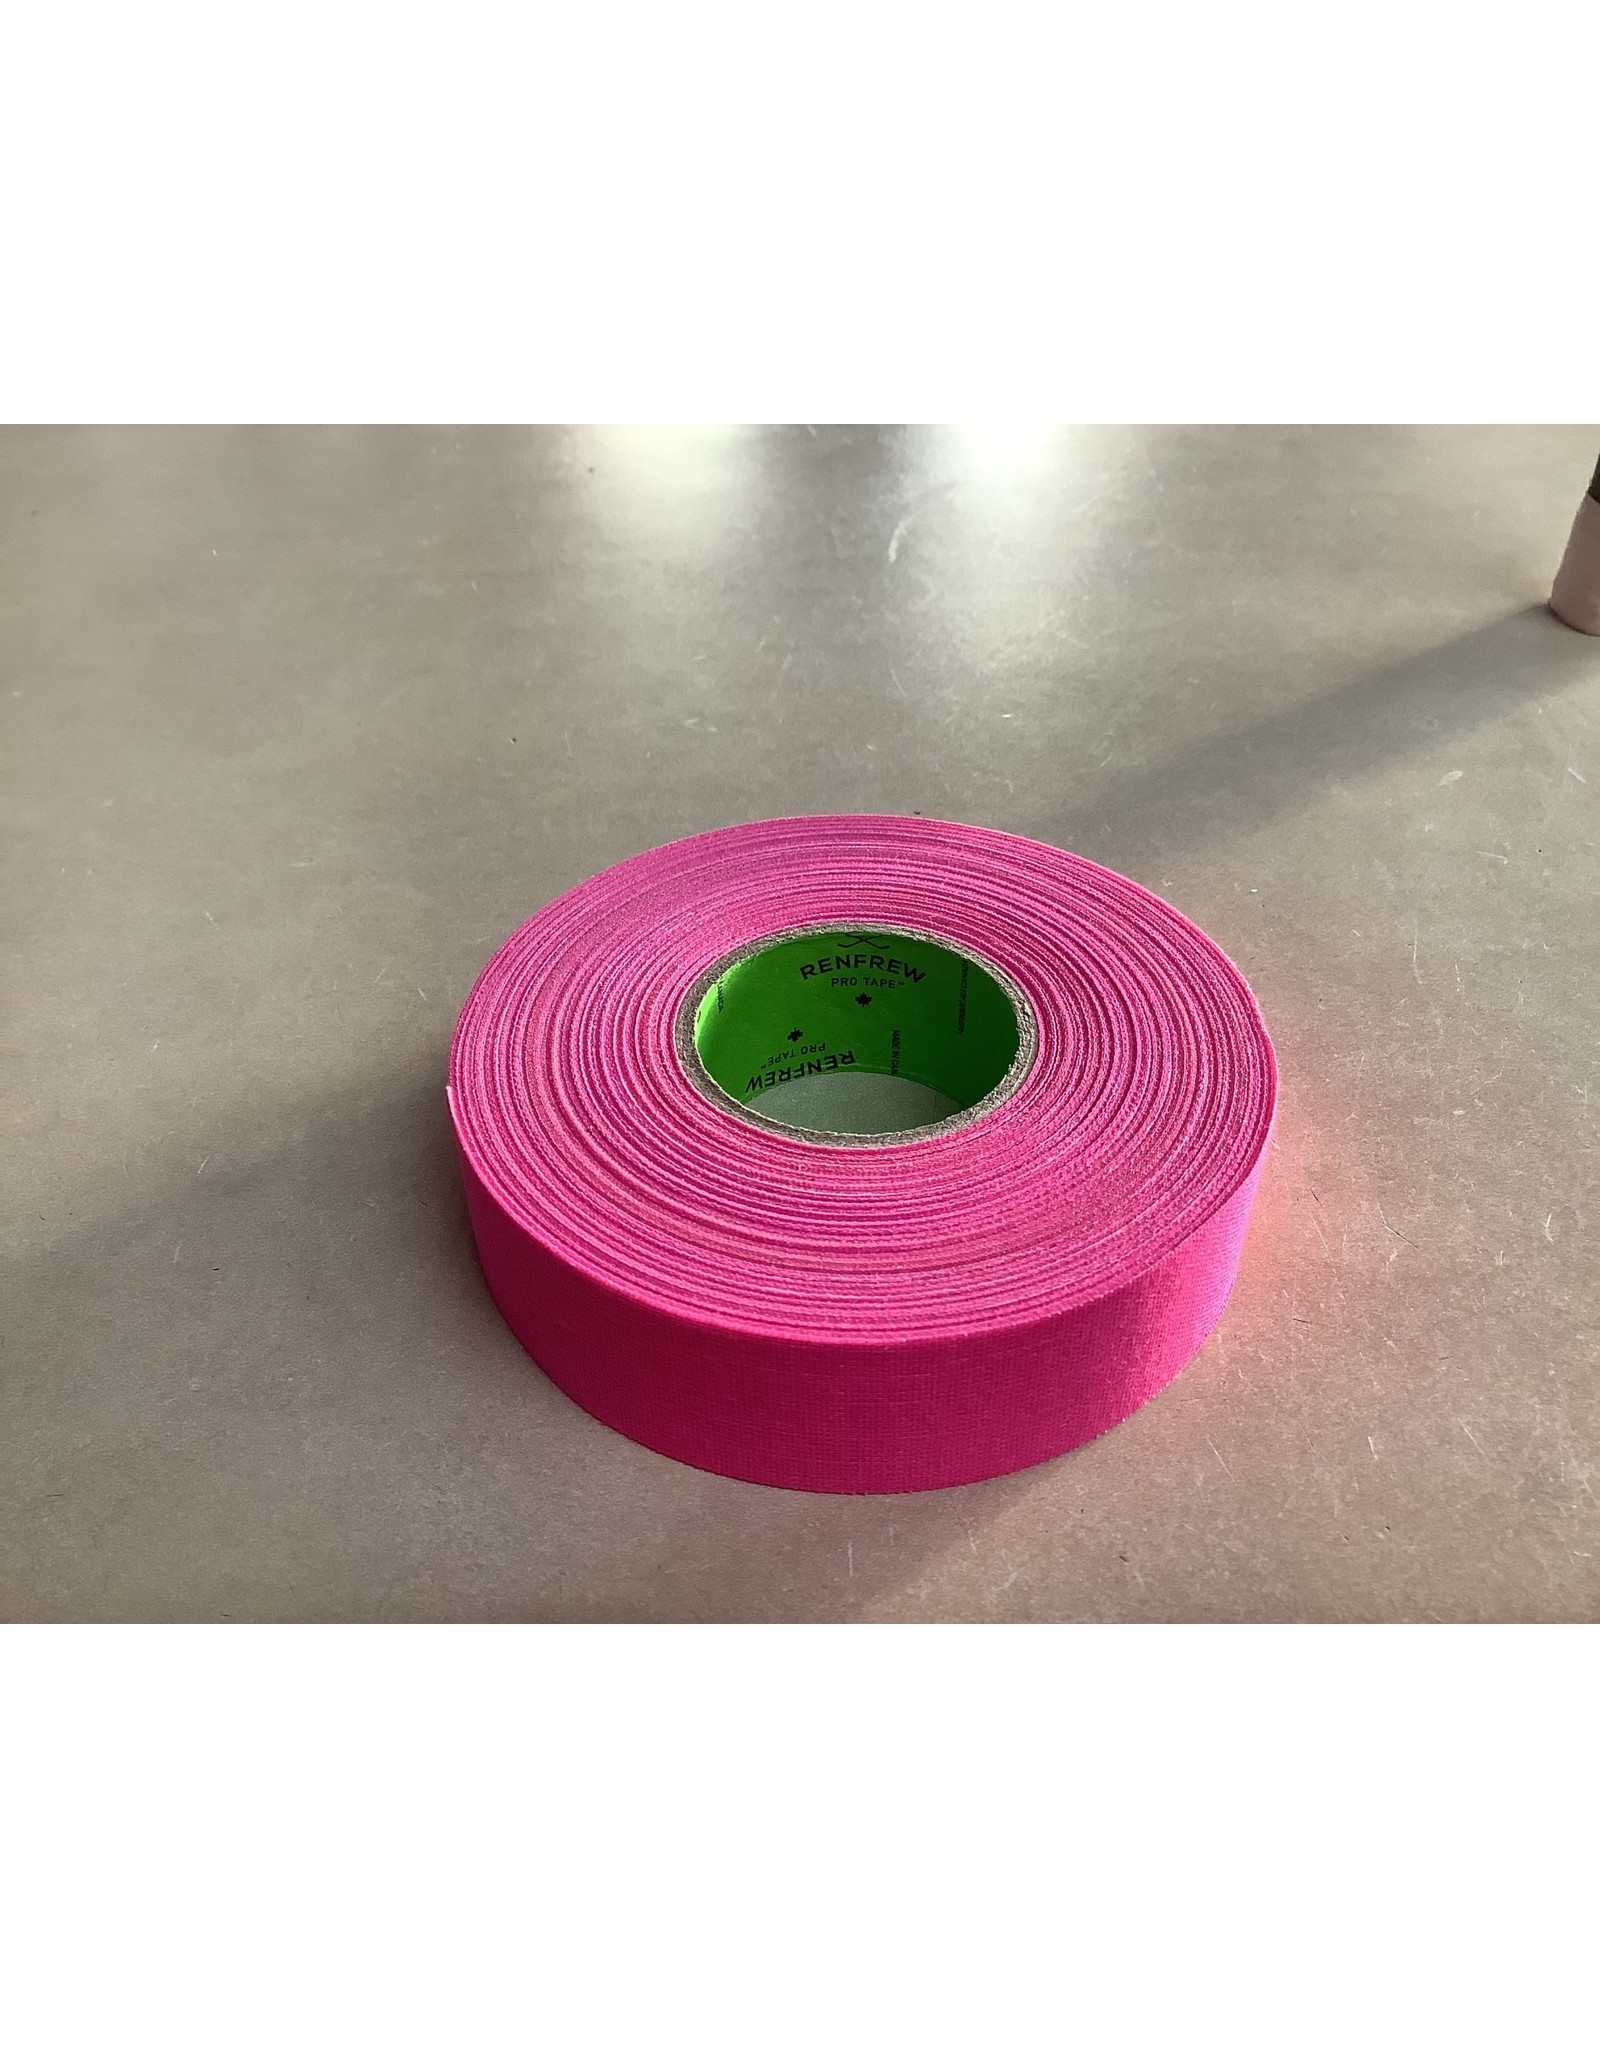 Renfrew Hockey Tape 1 inch x 25 yards